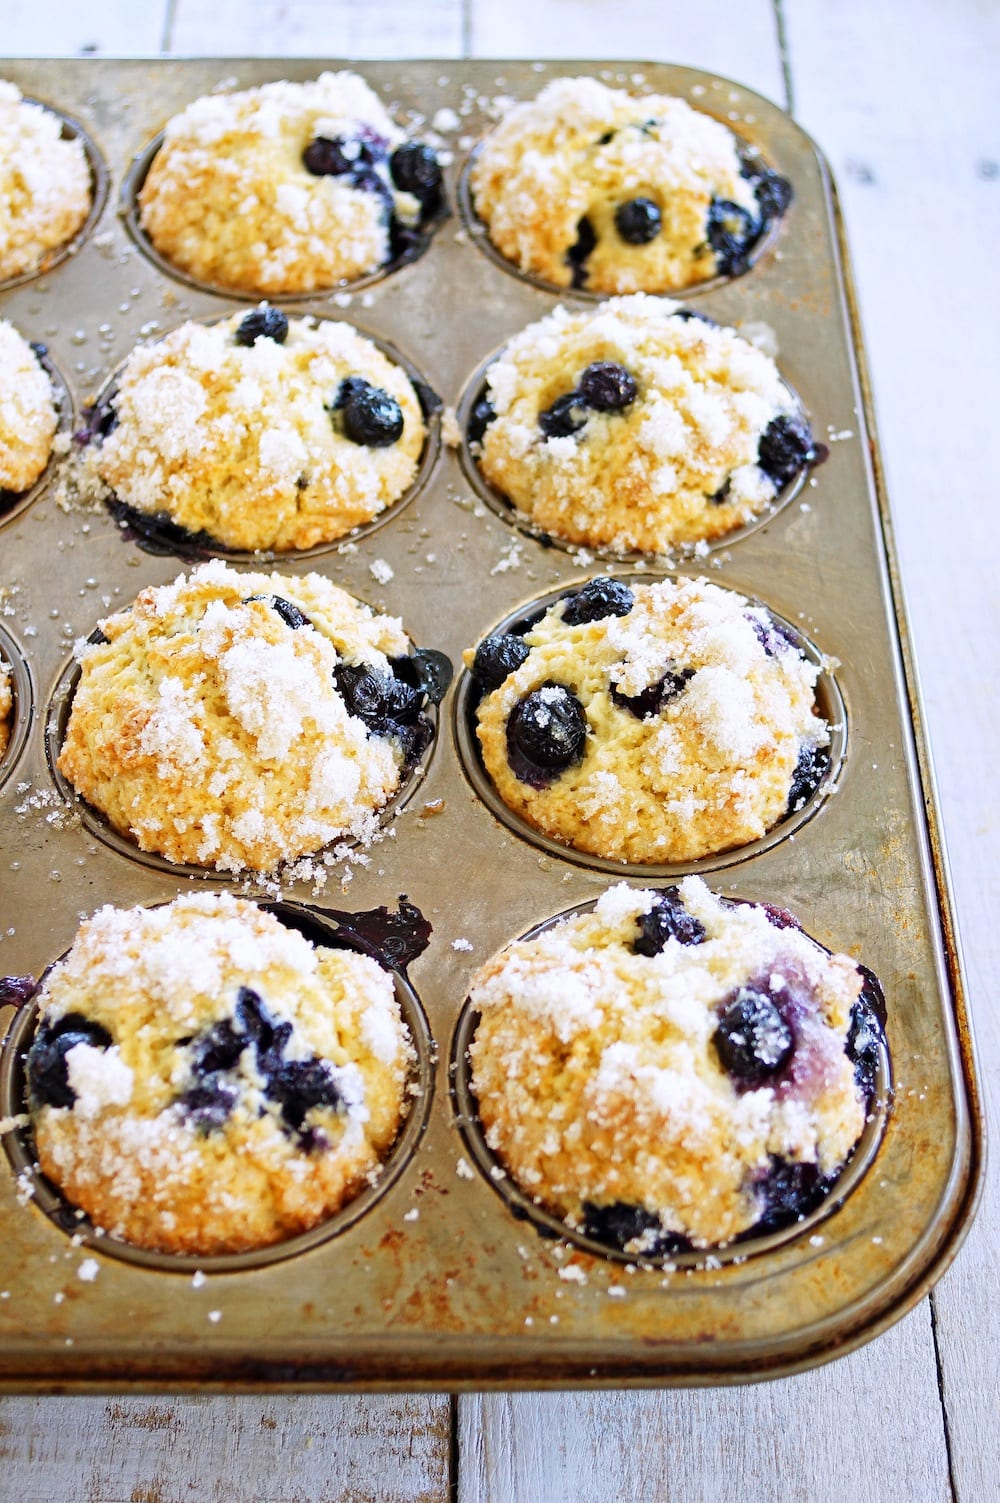 lemon ricotta blackberry muffins lemon ricotta blackberry muffins ...